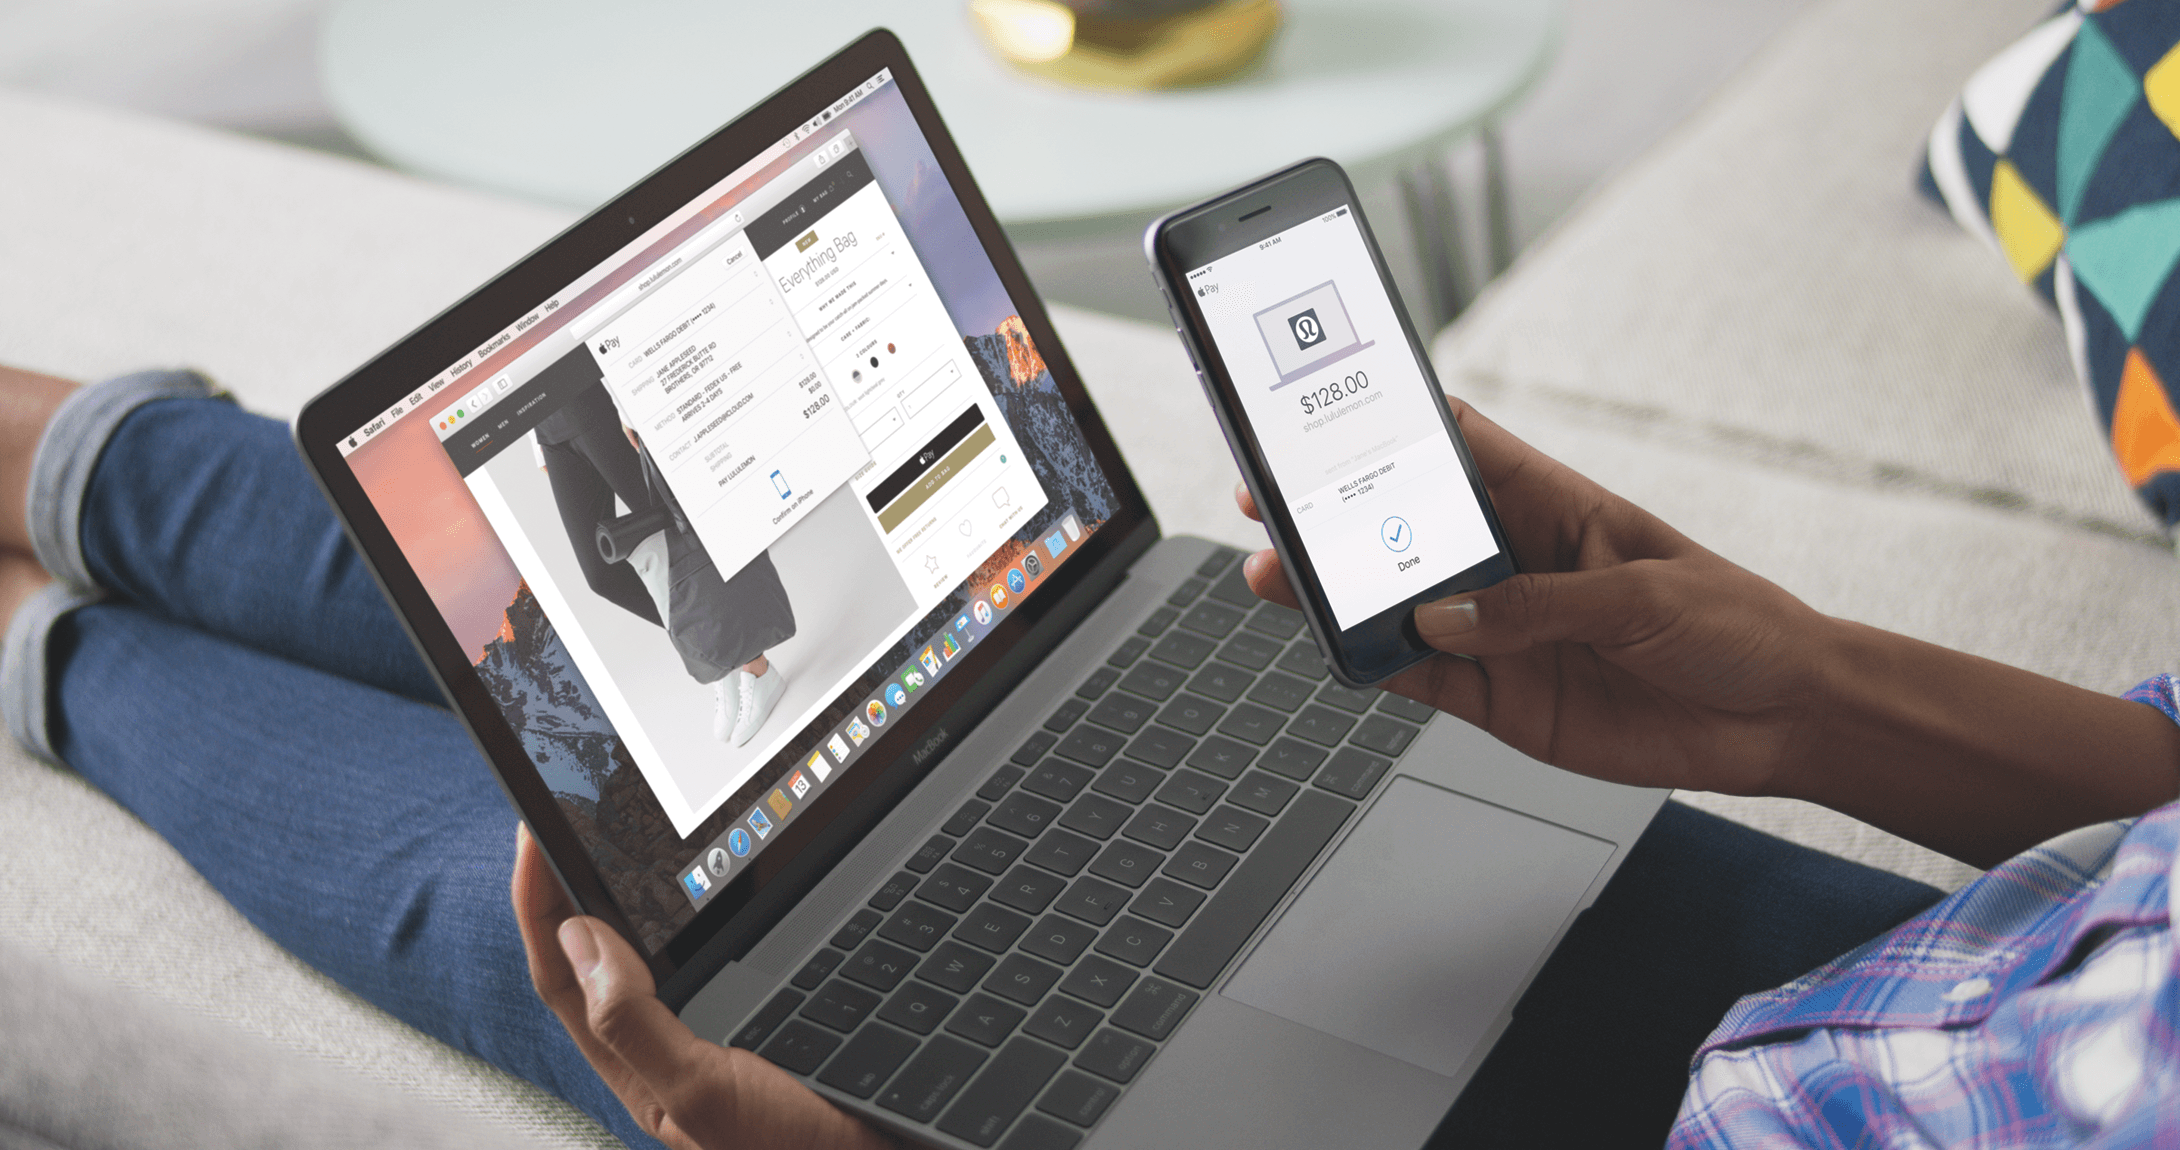 Paying on a Mac using TouchID on an iPhone